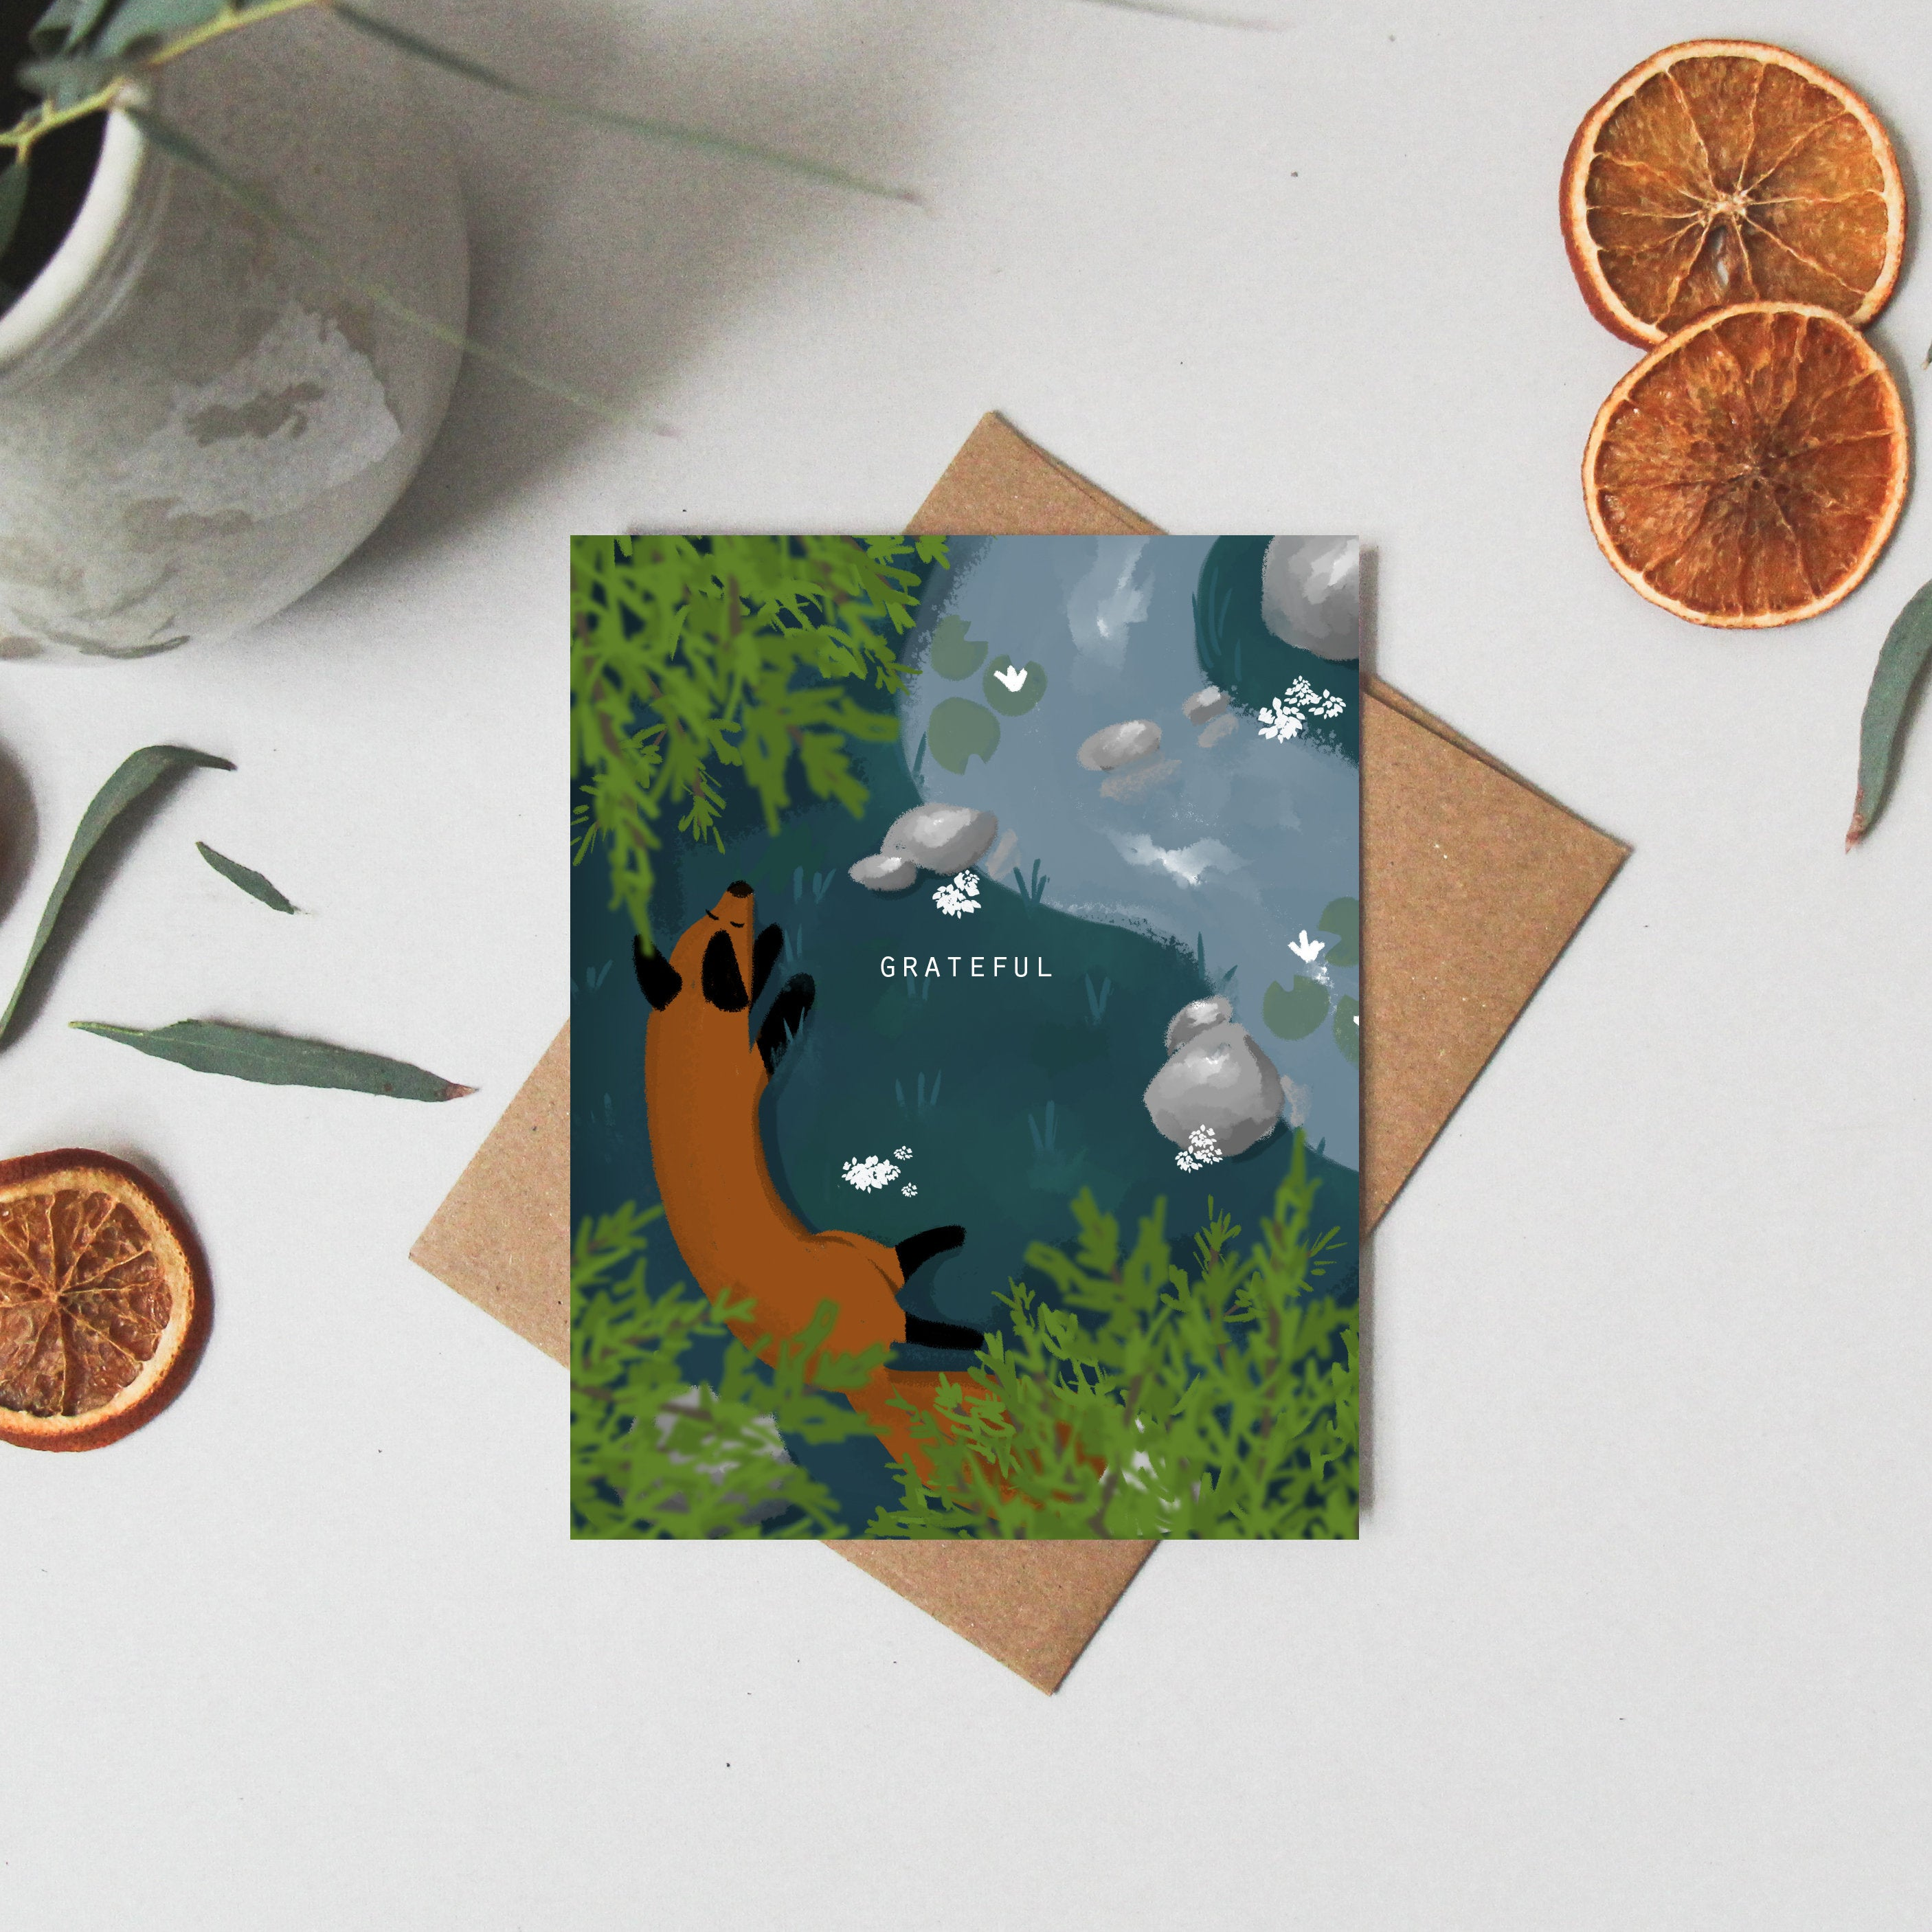 Thank you Cards - Thank you Gift - Greeting Cards blank - Greeting Cards Fox - Thinking of You Card - Whimsical Card